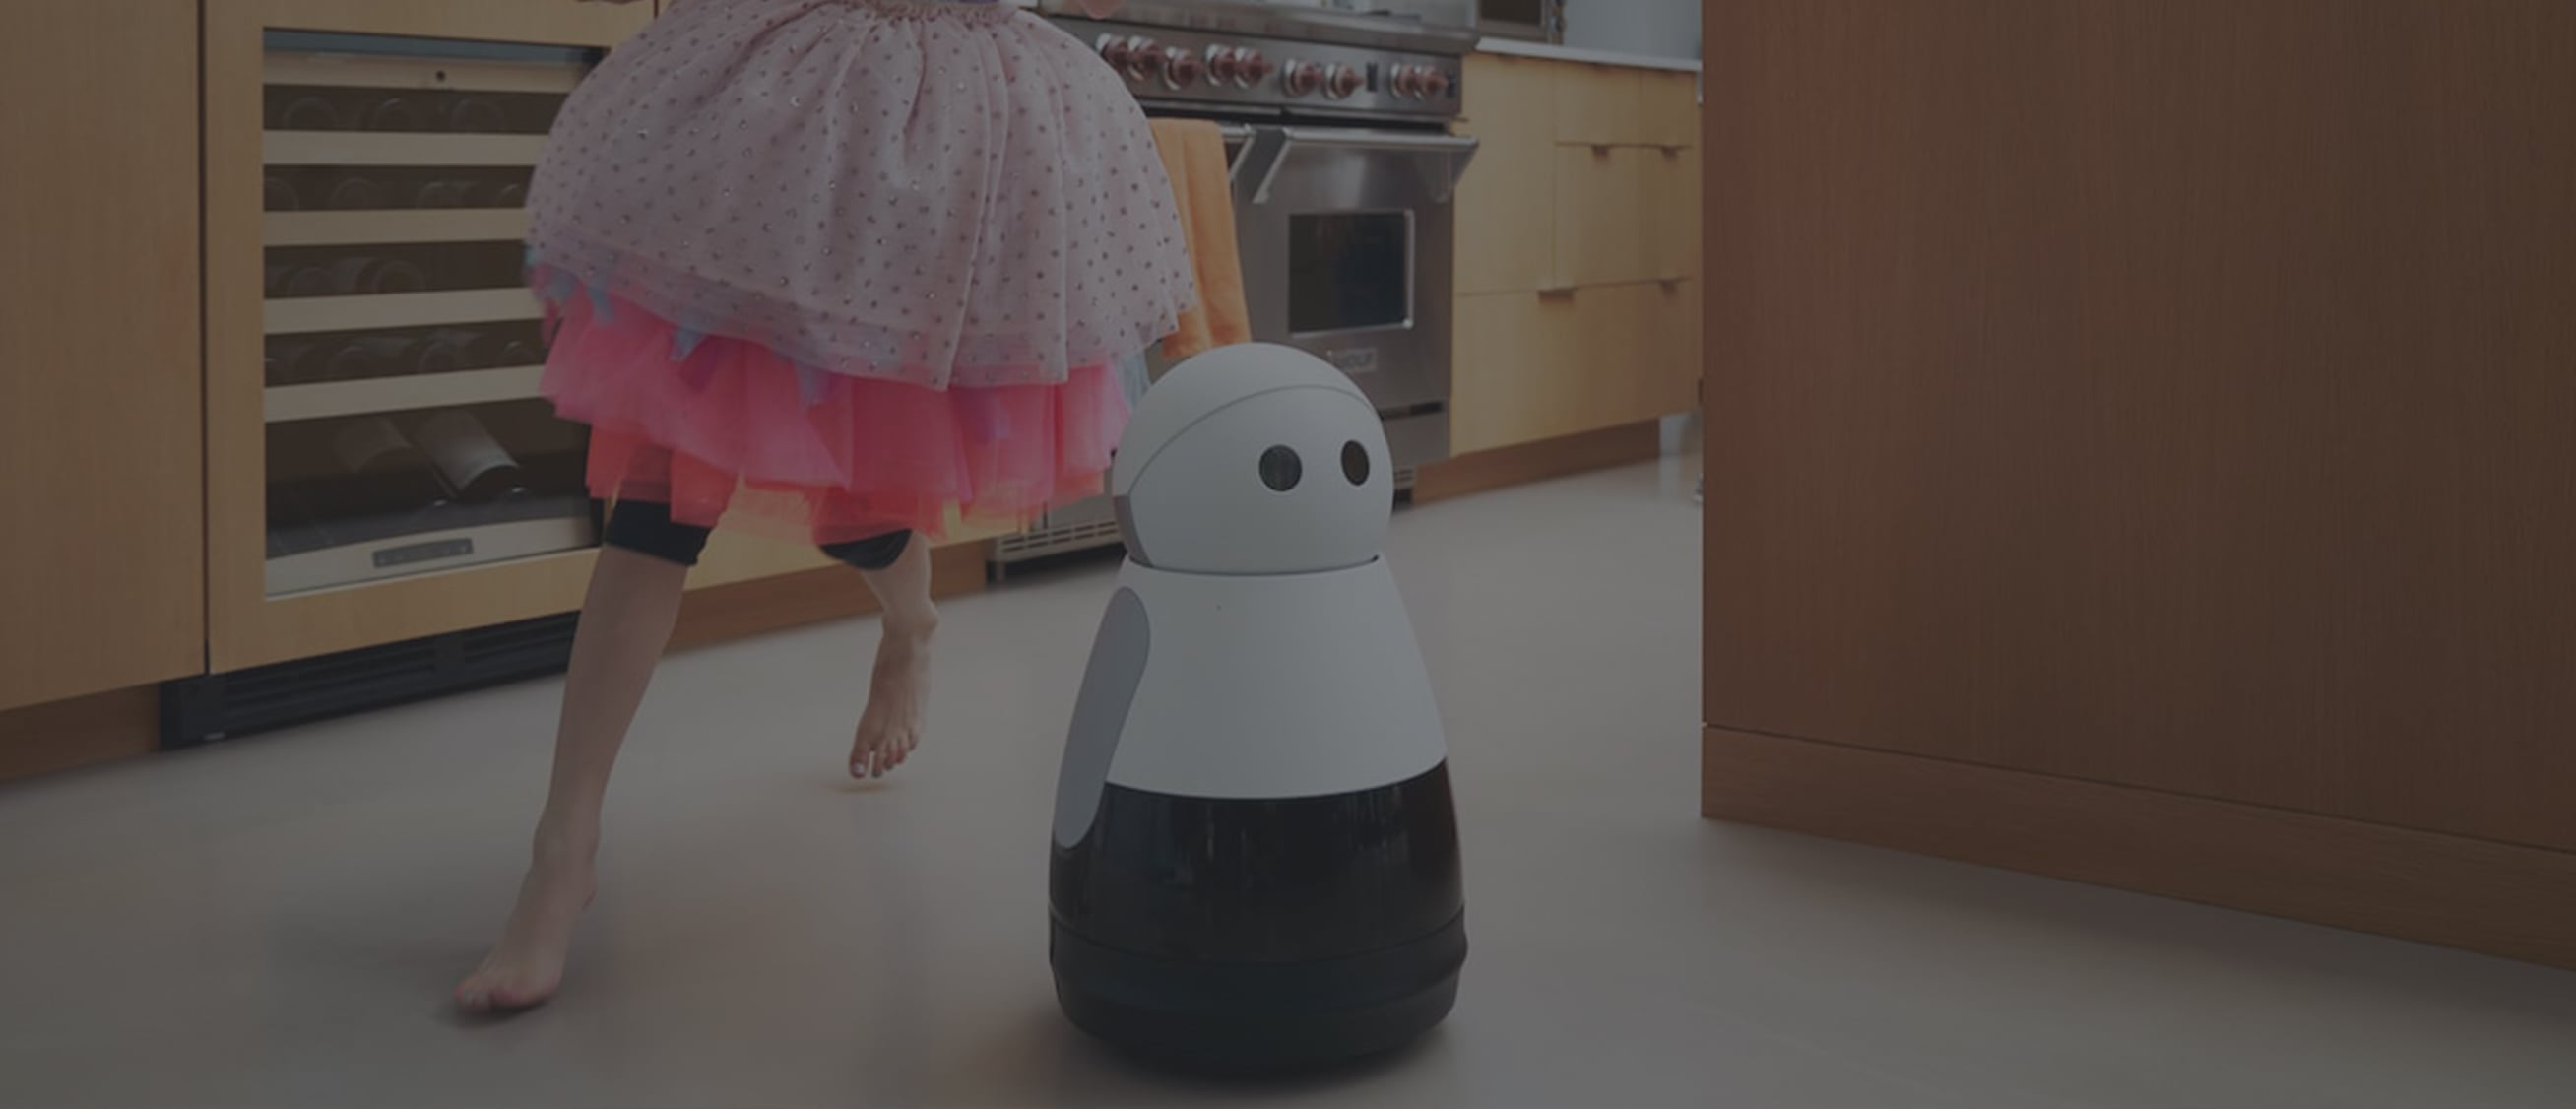 Kuri Adorable Home Robot » Gadget Flow